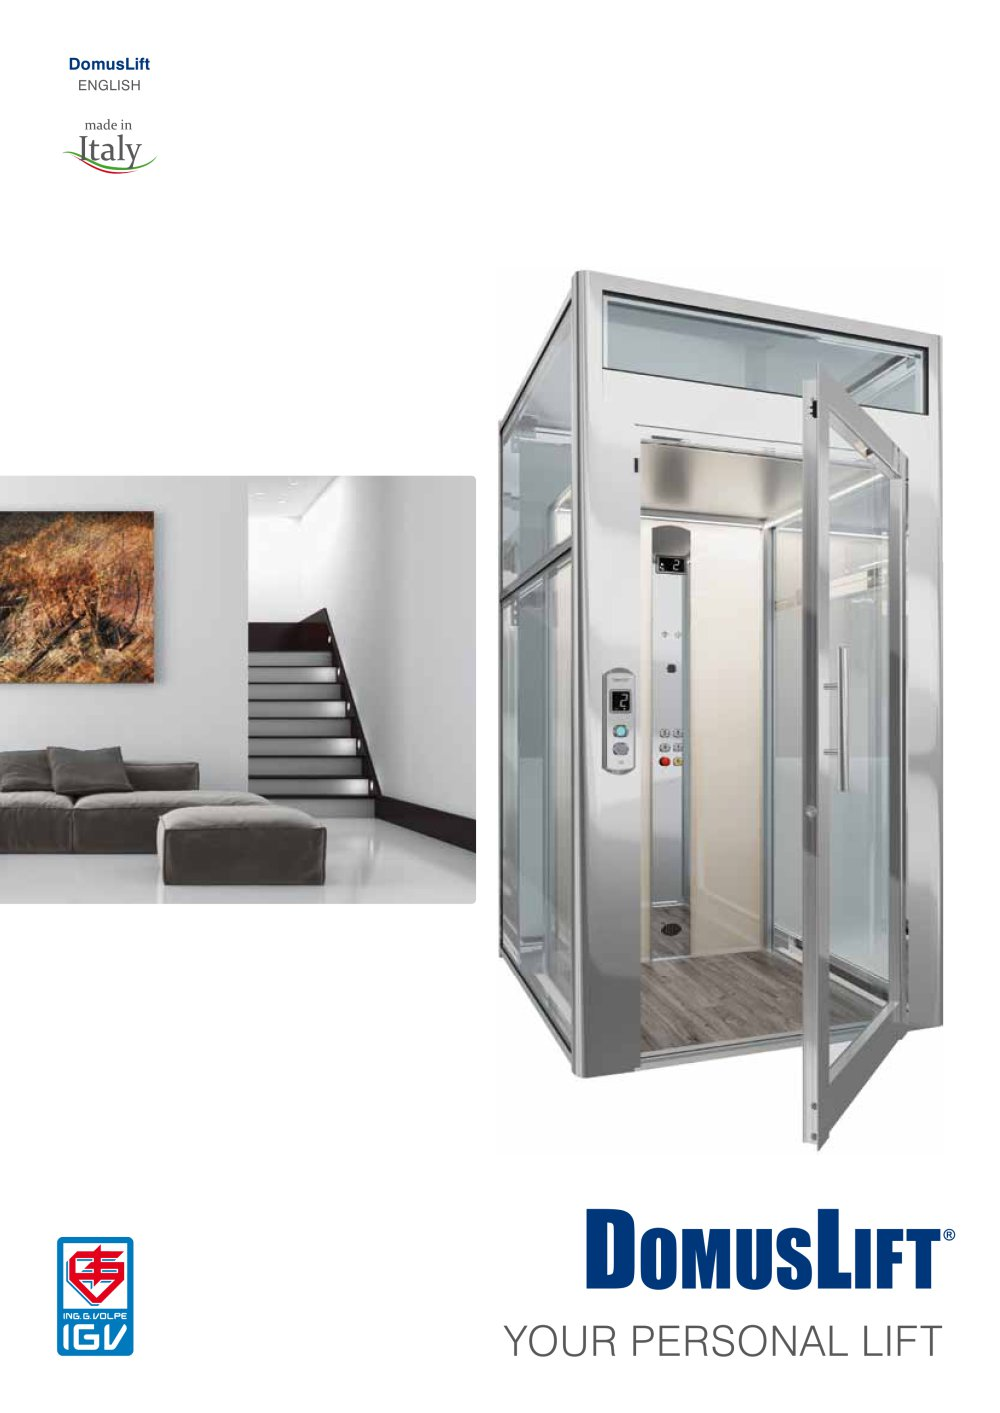 DomusLift - ENG - 1 / 32 Pages  sc 1 st  Catalogues Archiexpo & DomusLift - ENG - IGV Group - PDF Catalogues | Documentation ...